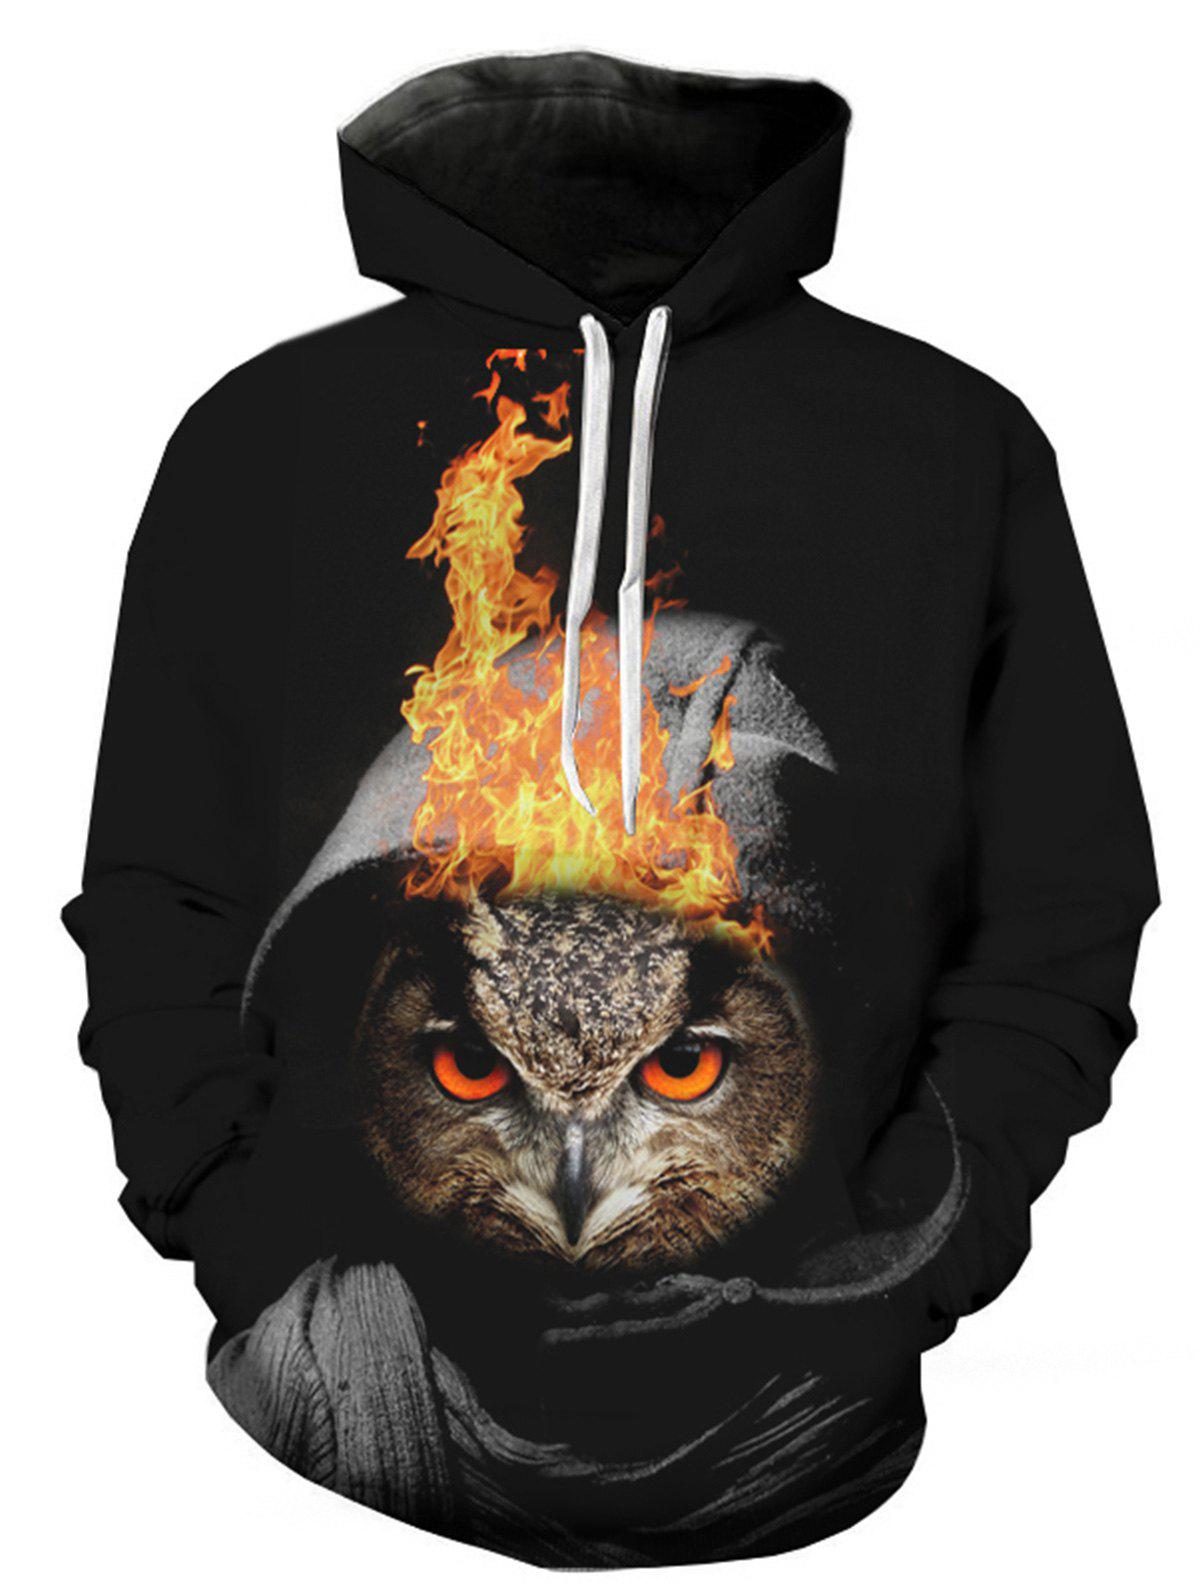 Owl Flame 3D Print Pullover Hoodie leopard flame 3d print pullover hoodie